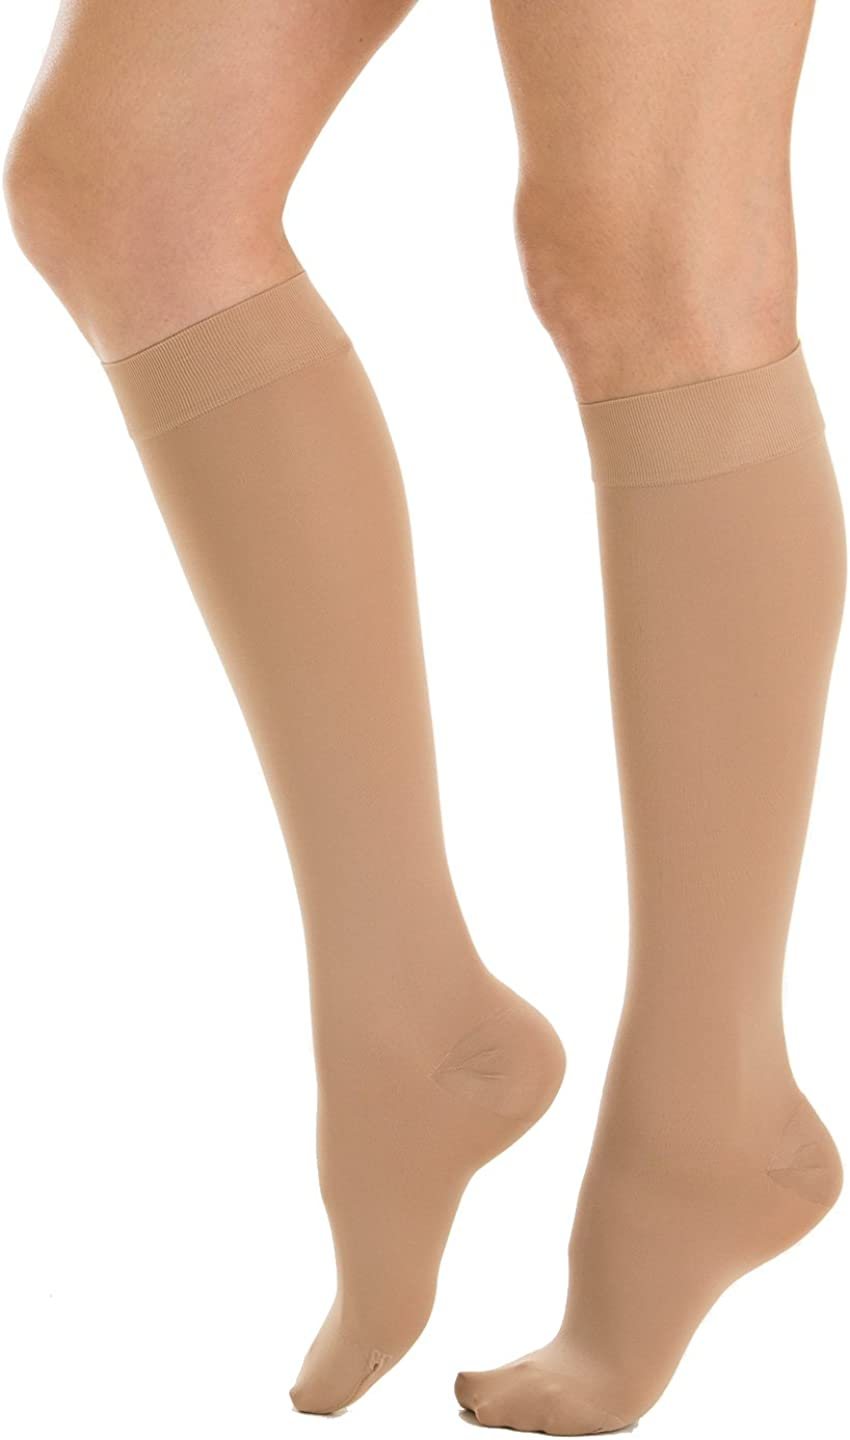 Relaxsan M1050 Cotton medical compression knee high socks - Class 1 (15-20 mmHg), 100% Made in Italy